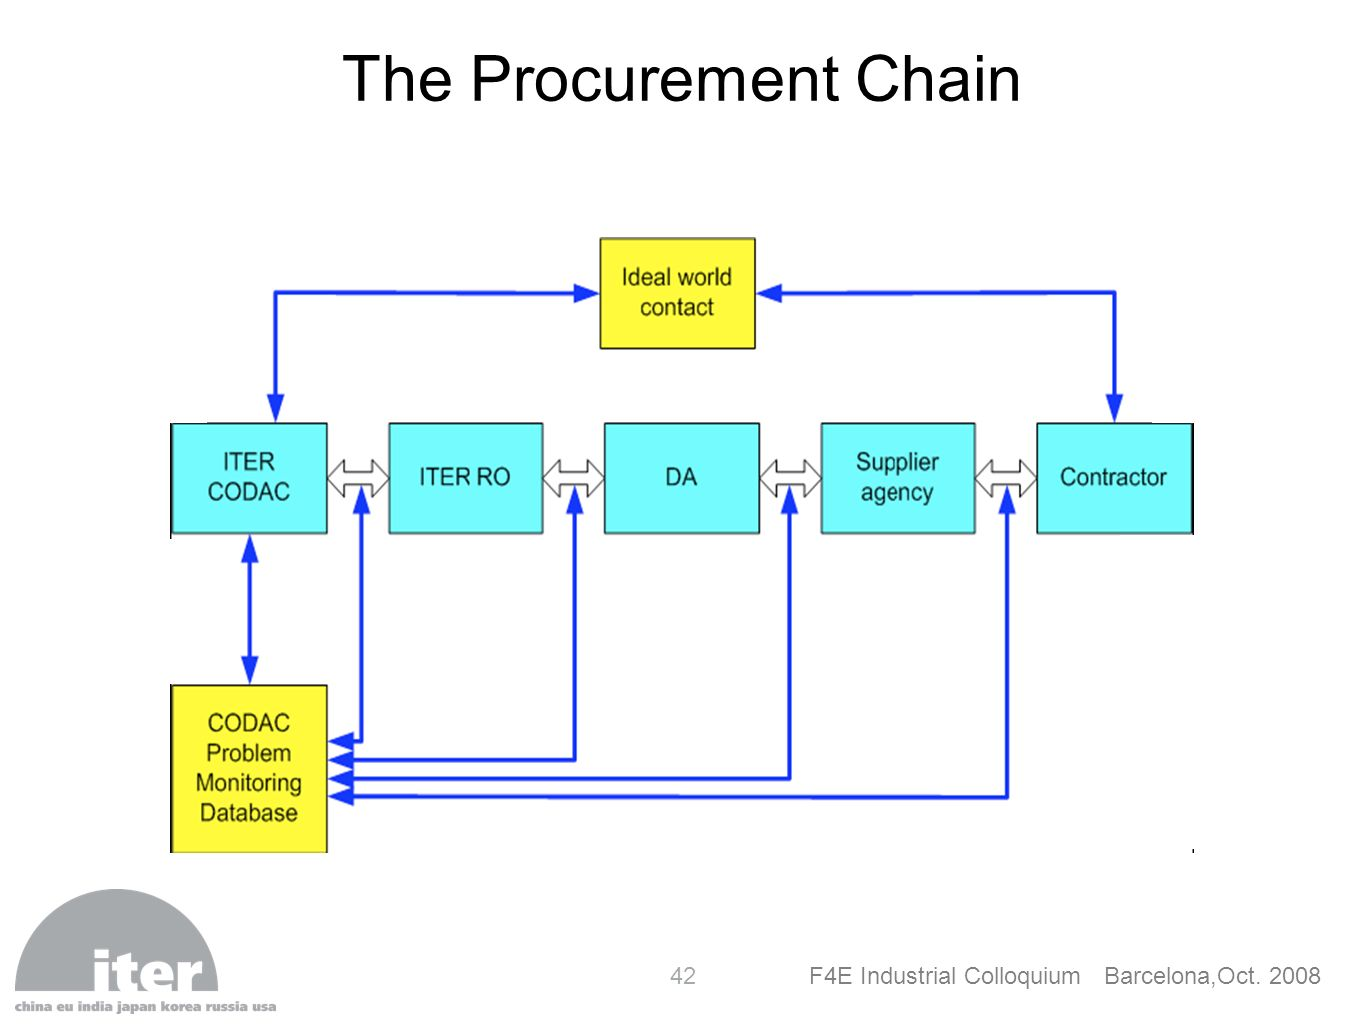 The Procurement Chain